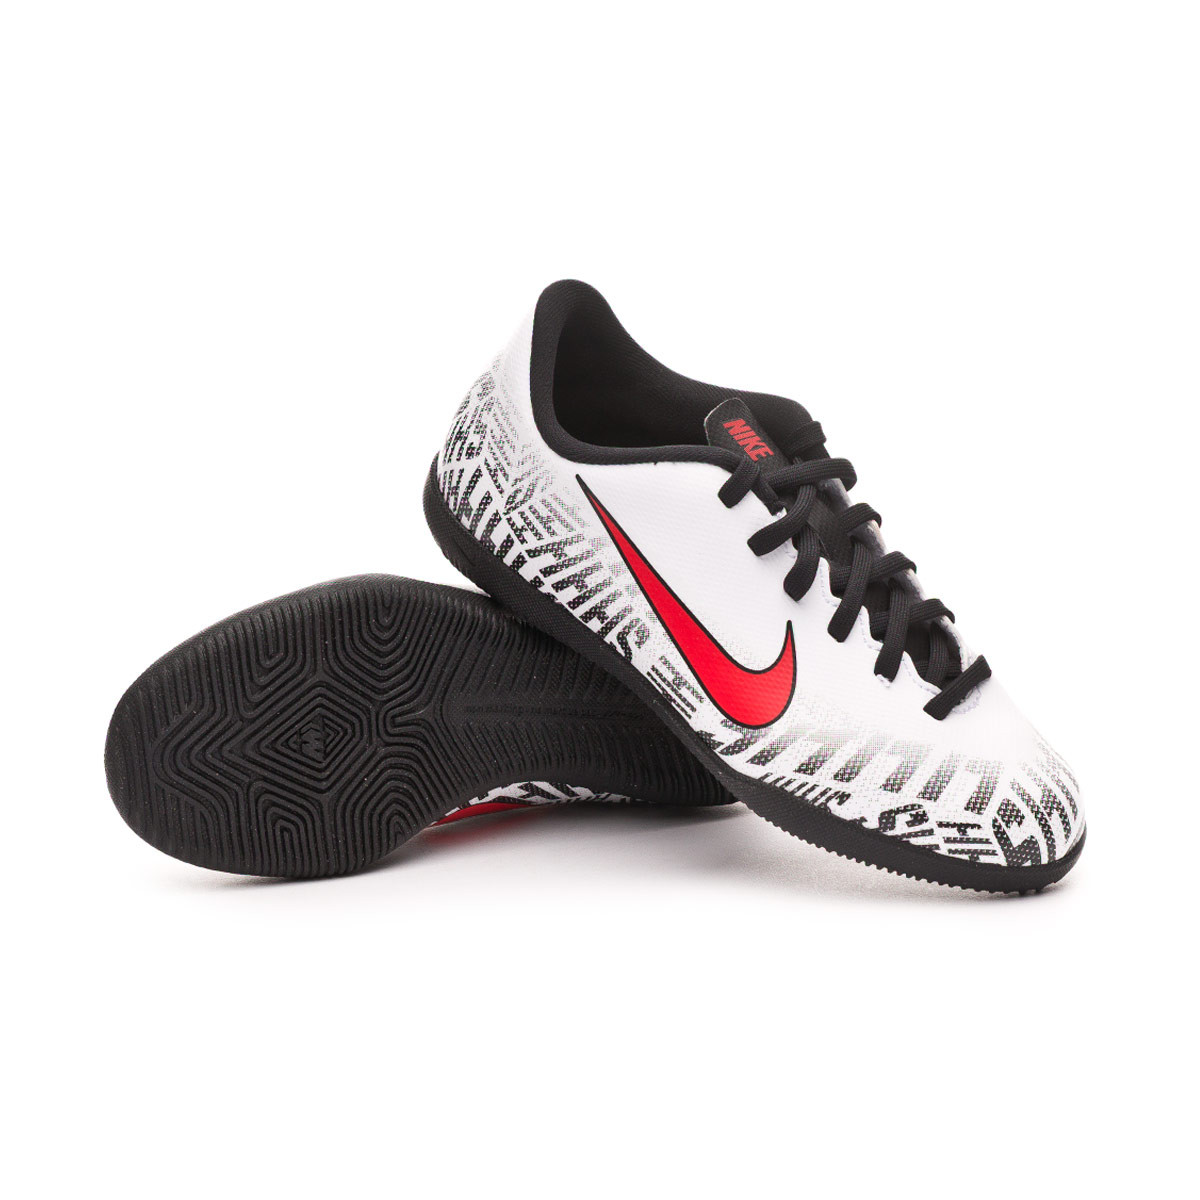 brand new 7487d 077a6 Zapatilla Mercurial Vapor XII Club Neymar Jr IC Niño White-Challenge  red-Black